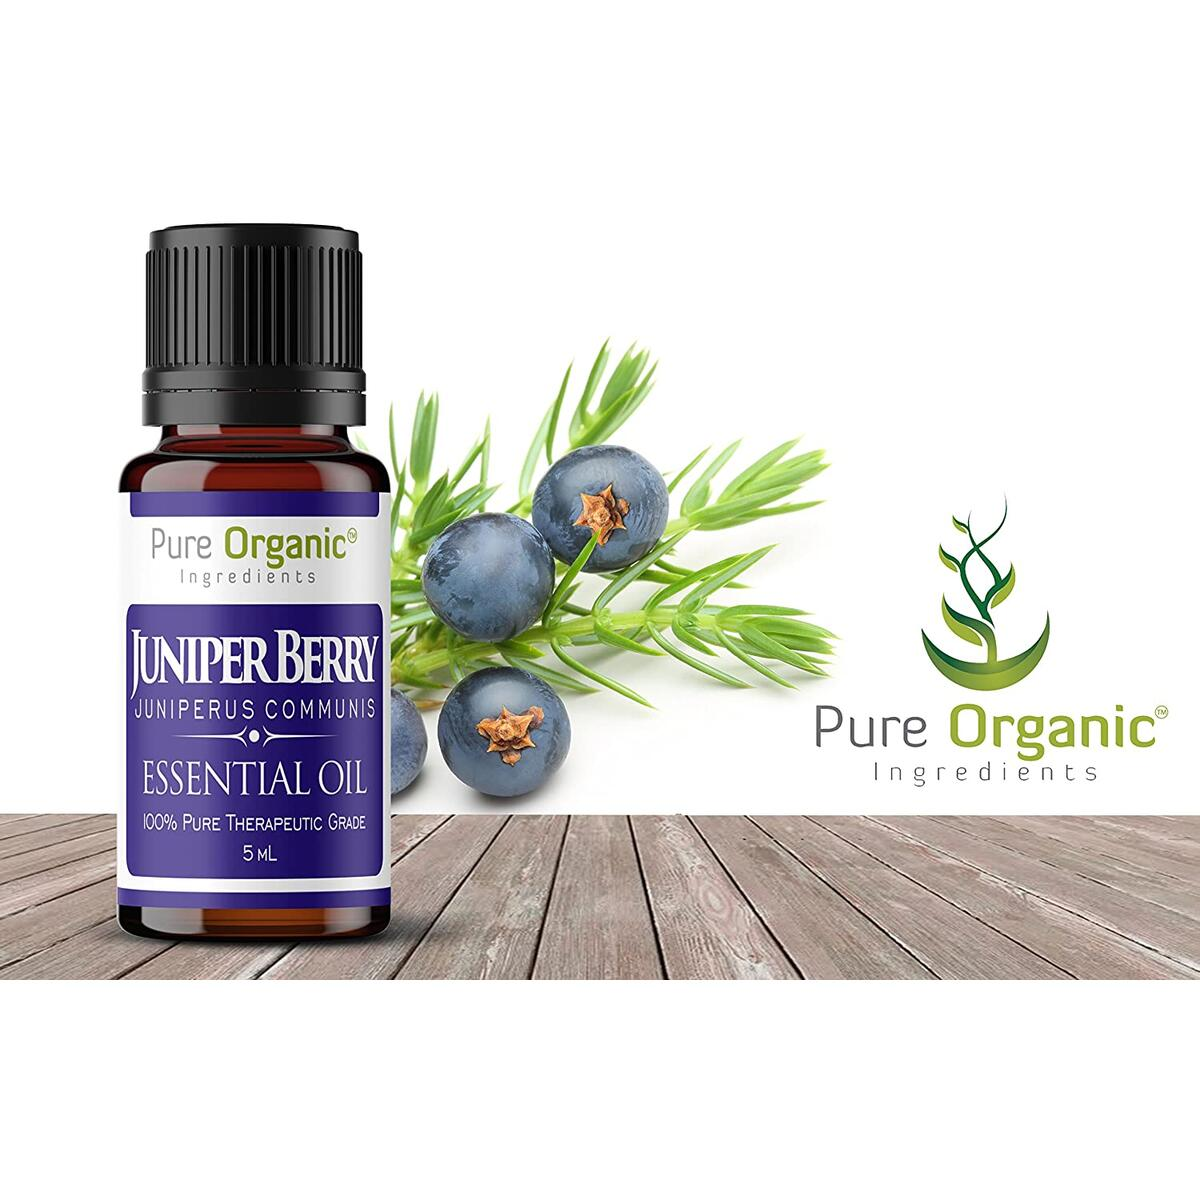 Pure Organic Ingredients Juniper Berry Essential Oil (5 ml), Convenient Dropper Cap Bottle, Promotes Healthy Kidney & Urinary Tract Function, Detox, Reduces Skin Blemishes, Fresh Aroma with a Hint